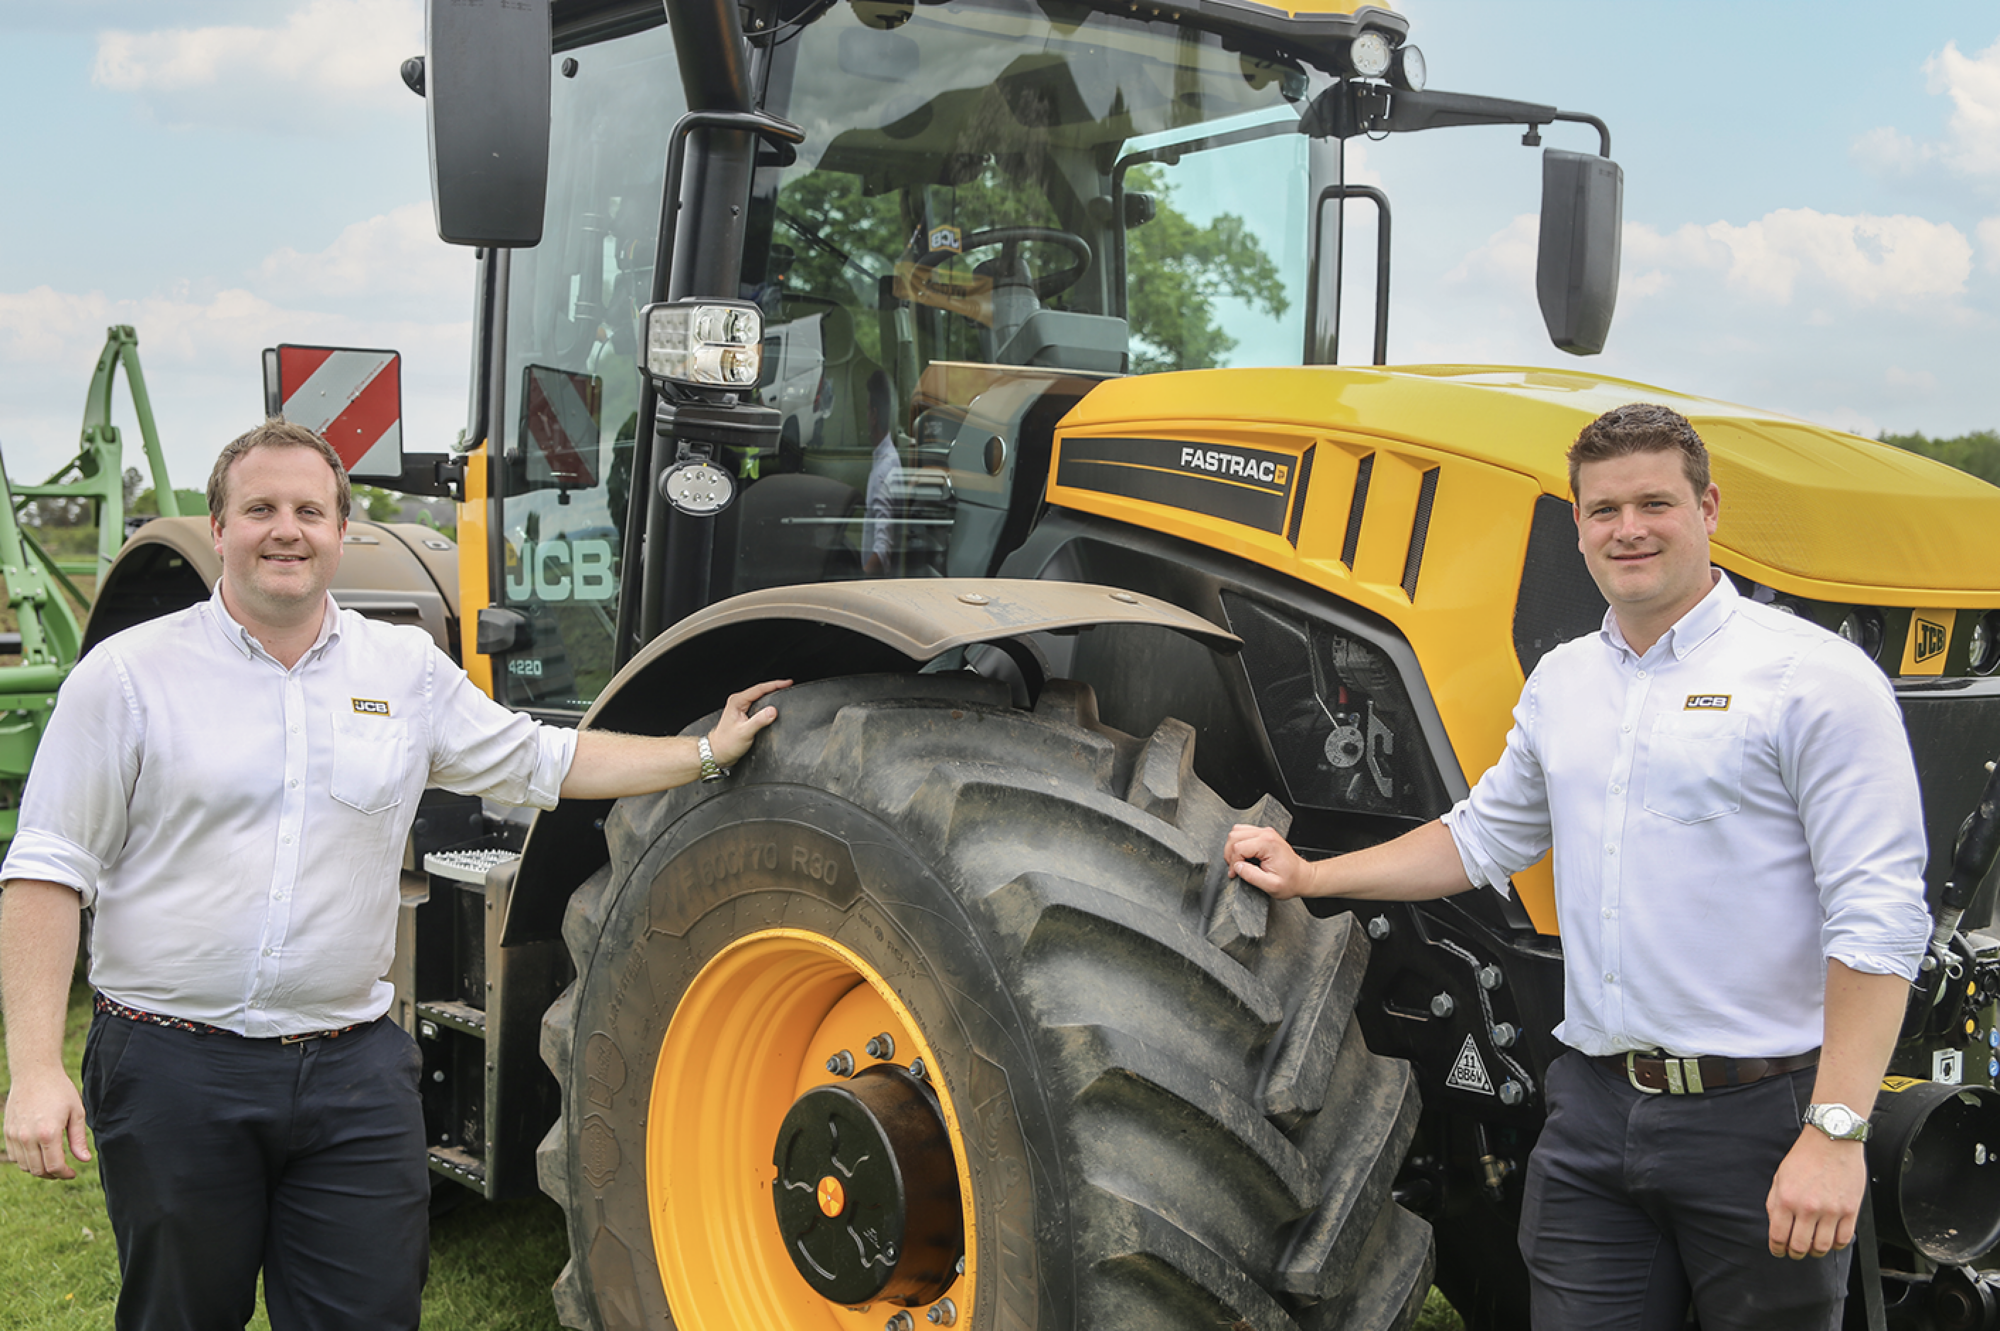 Pictured with the latest 4000-series Fastrac are product specialist Tom Mowforth (left) with James Coxon.